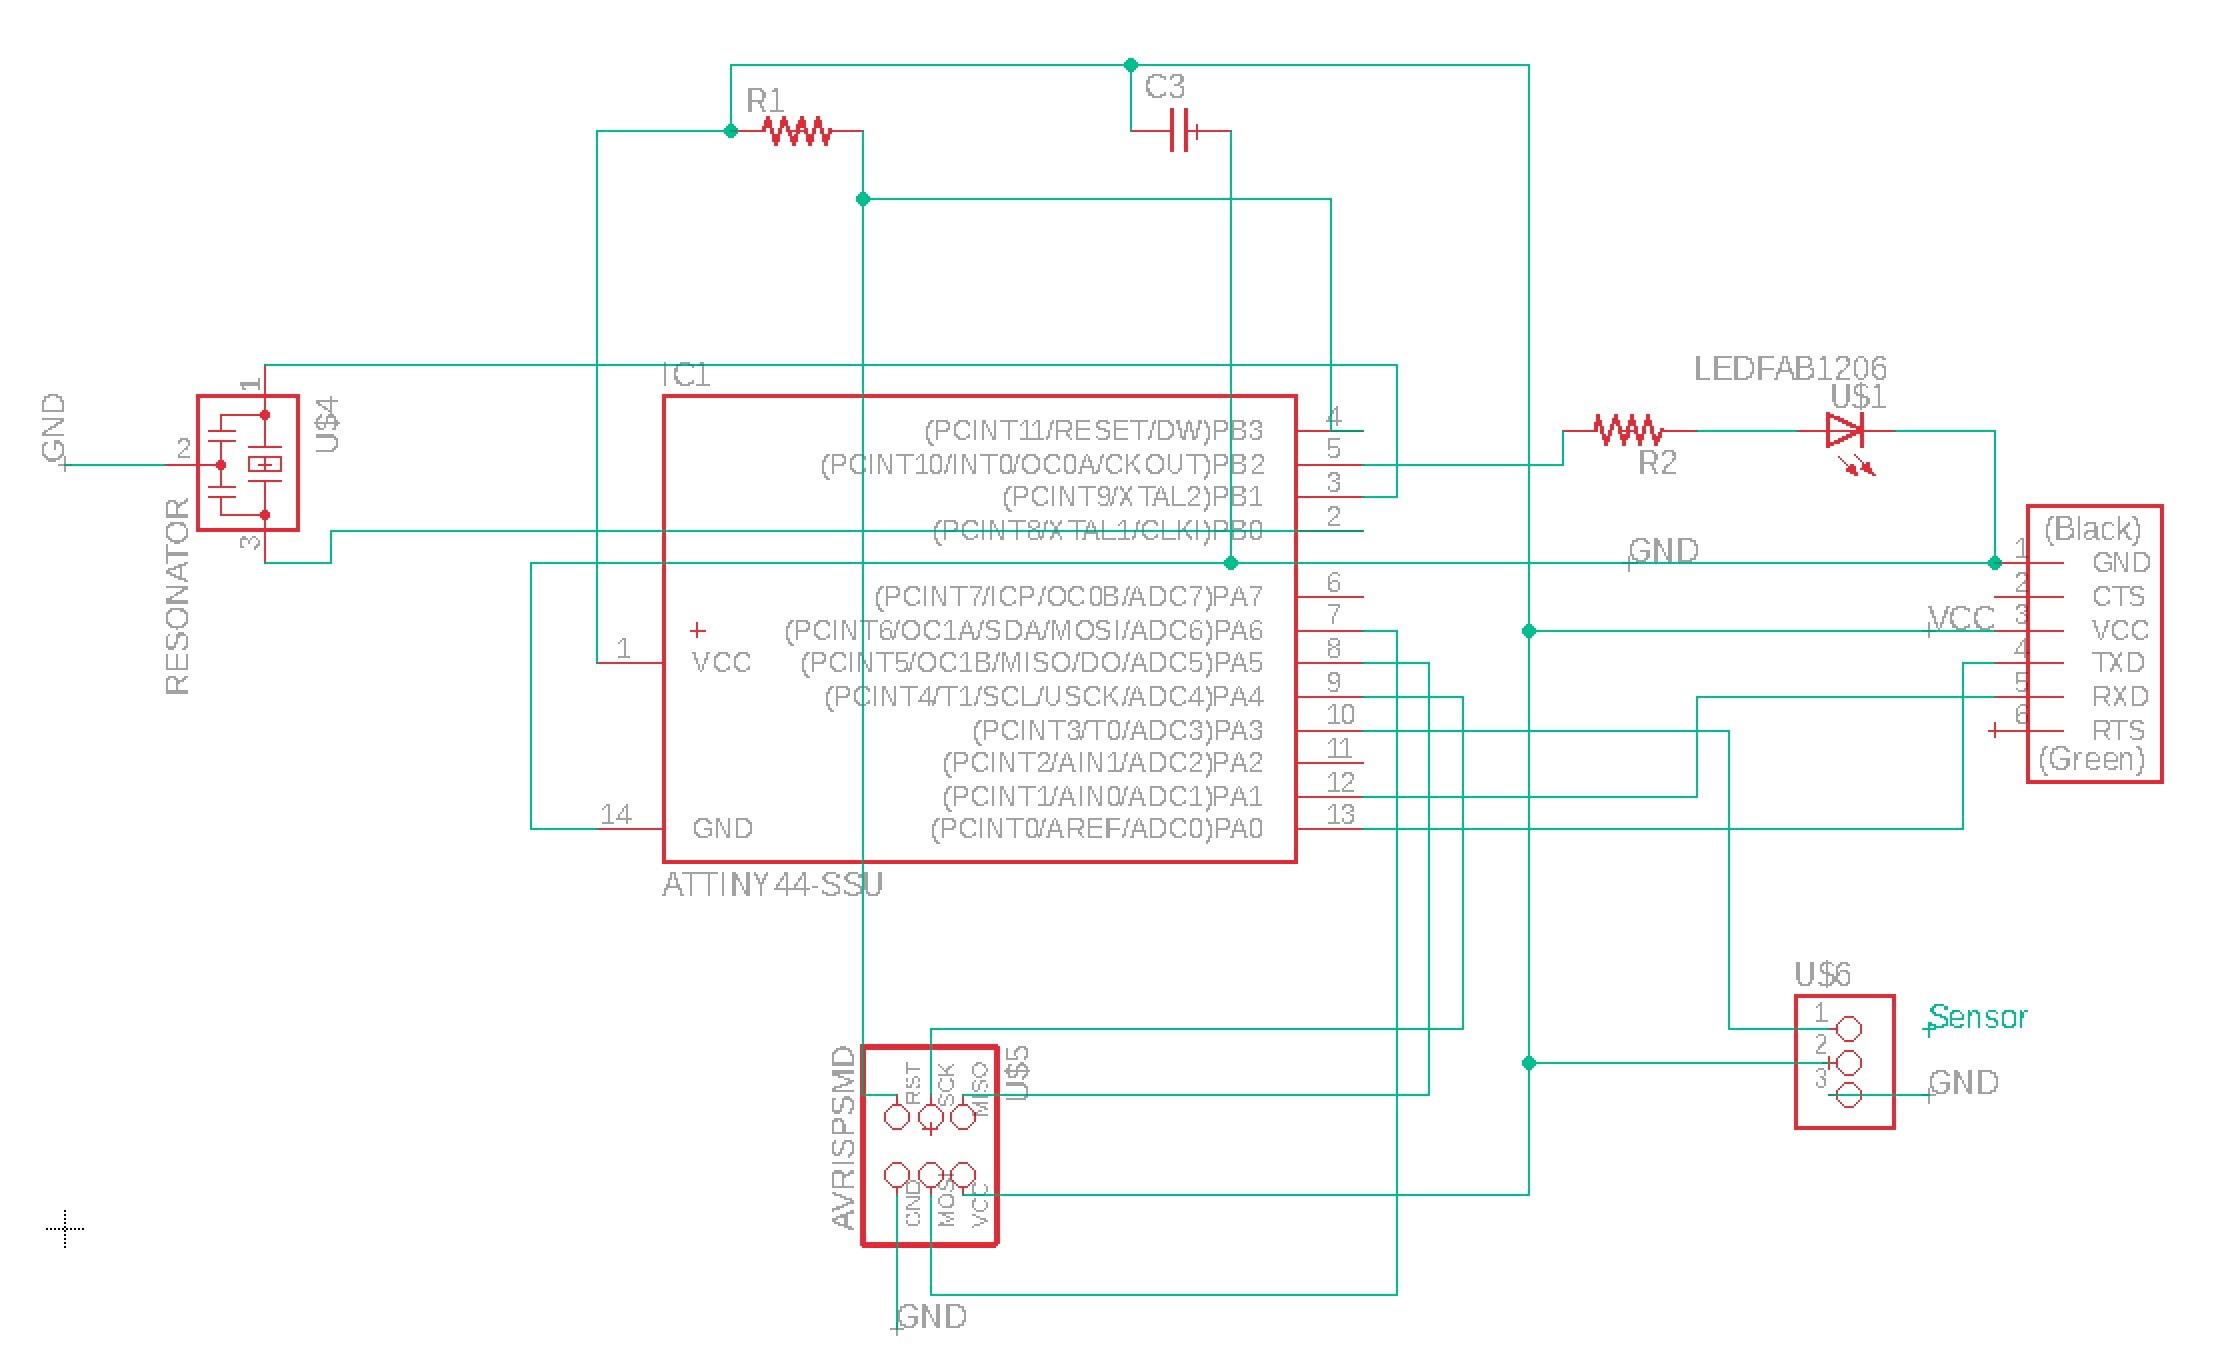 Final Project Attiny2313 Based Lan Cable Tester Schematic This Is The Third Assignment Requiring Work On Sr20 Mill And With Each One Setup Running Of Becomes Easier Mods Software Provided